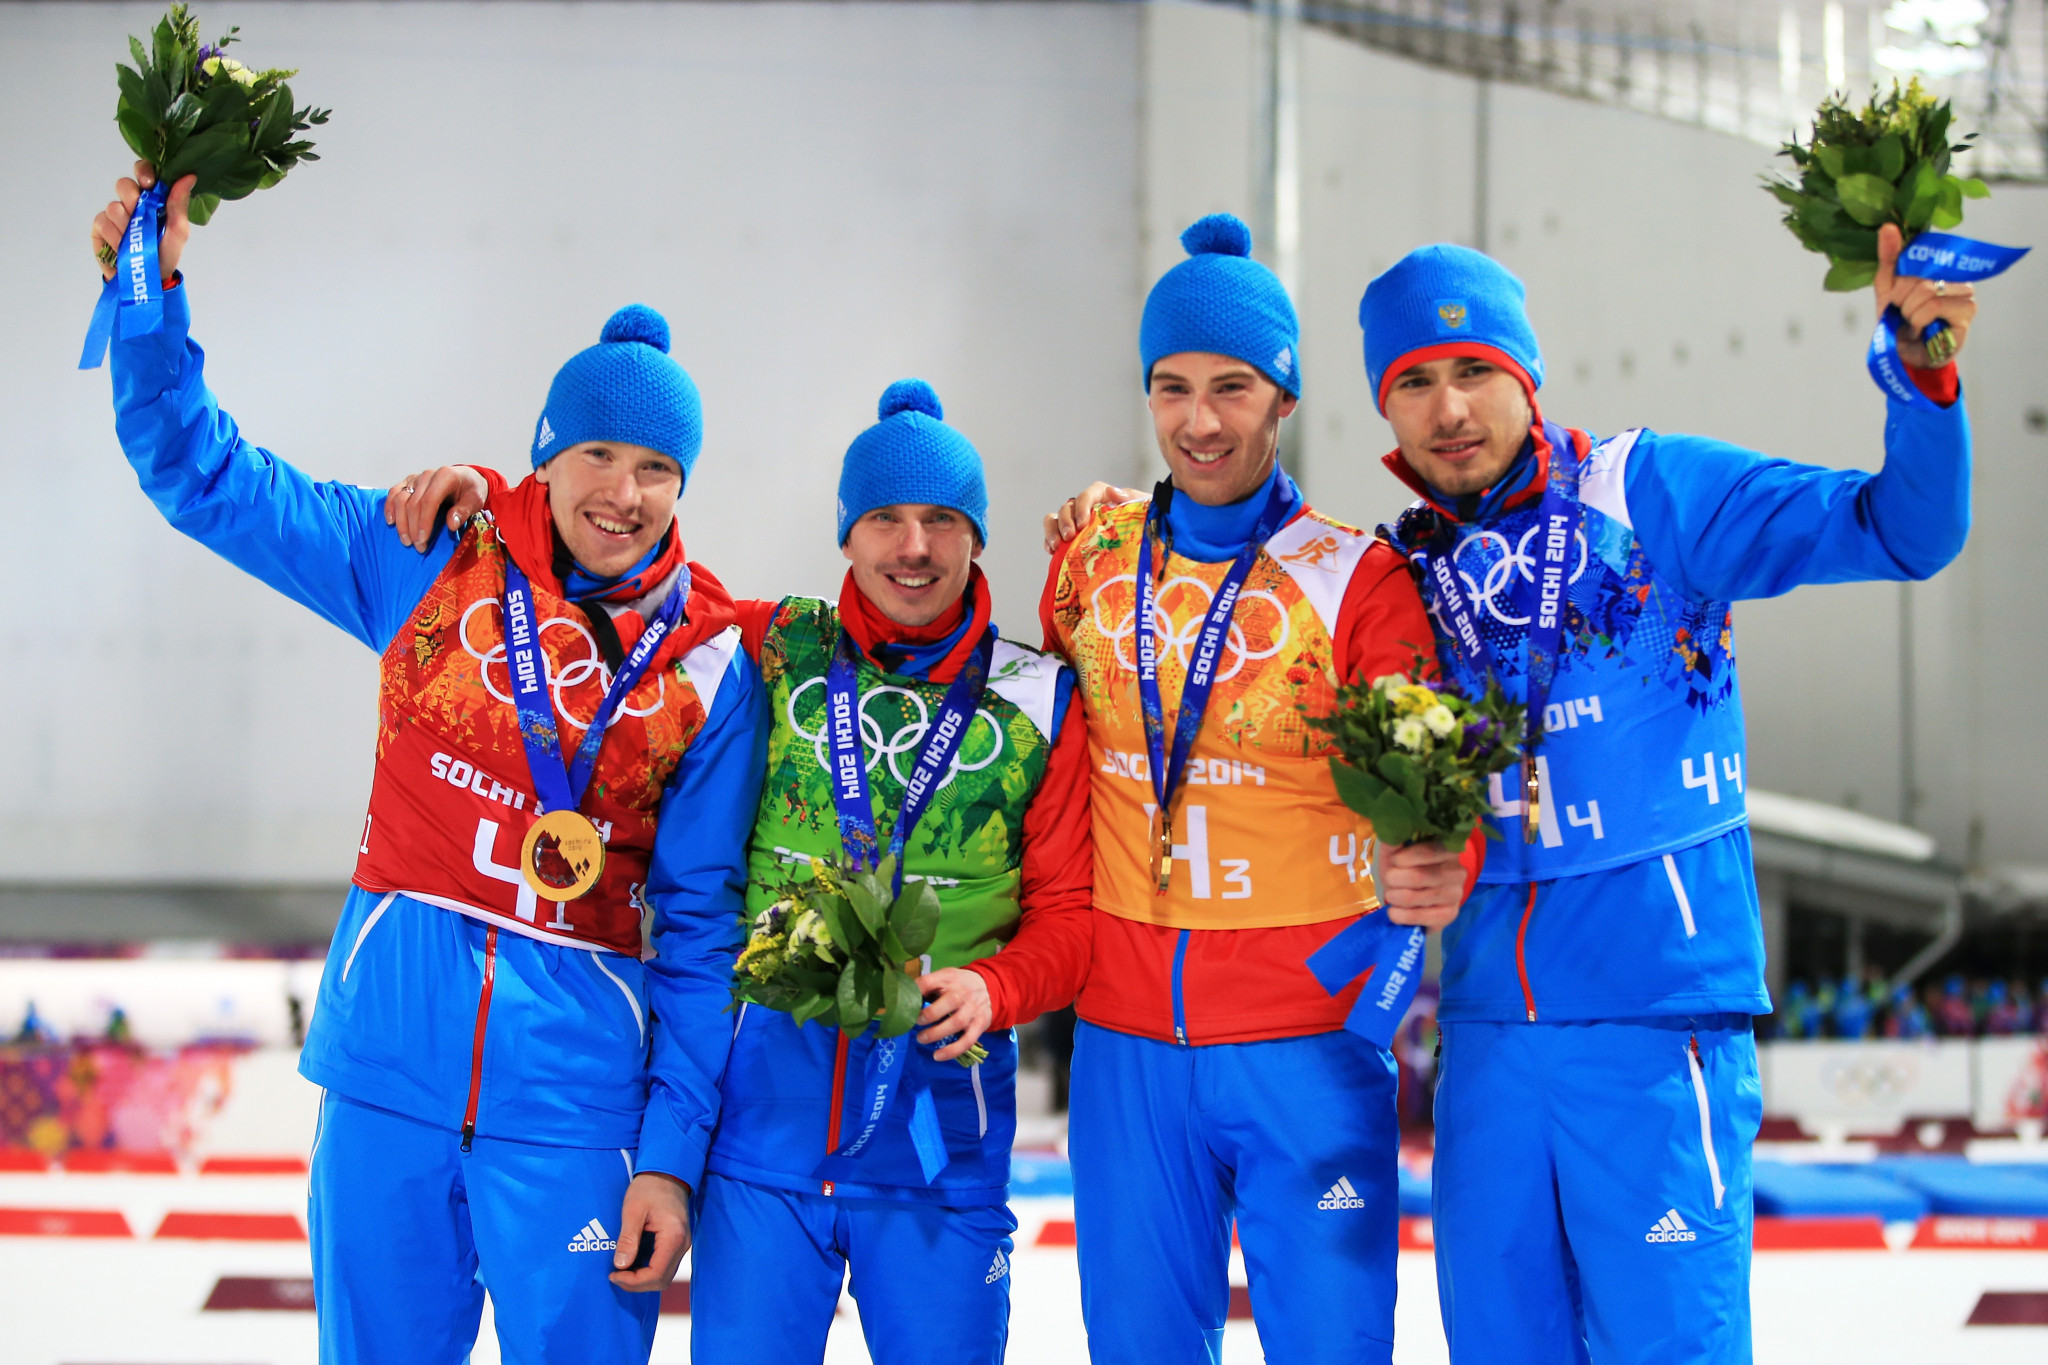 Evgeny Ustyugov and his Russian team-mates are set to be  stripped of their biathlon relay gold medal from Sochi 2014 ©Getty Images